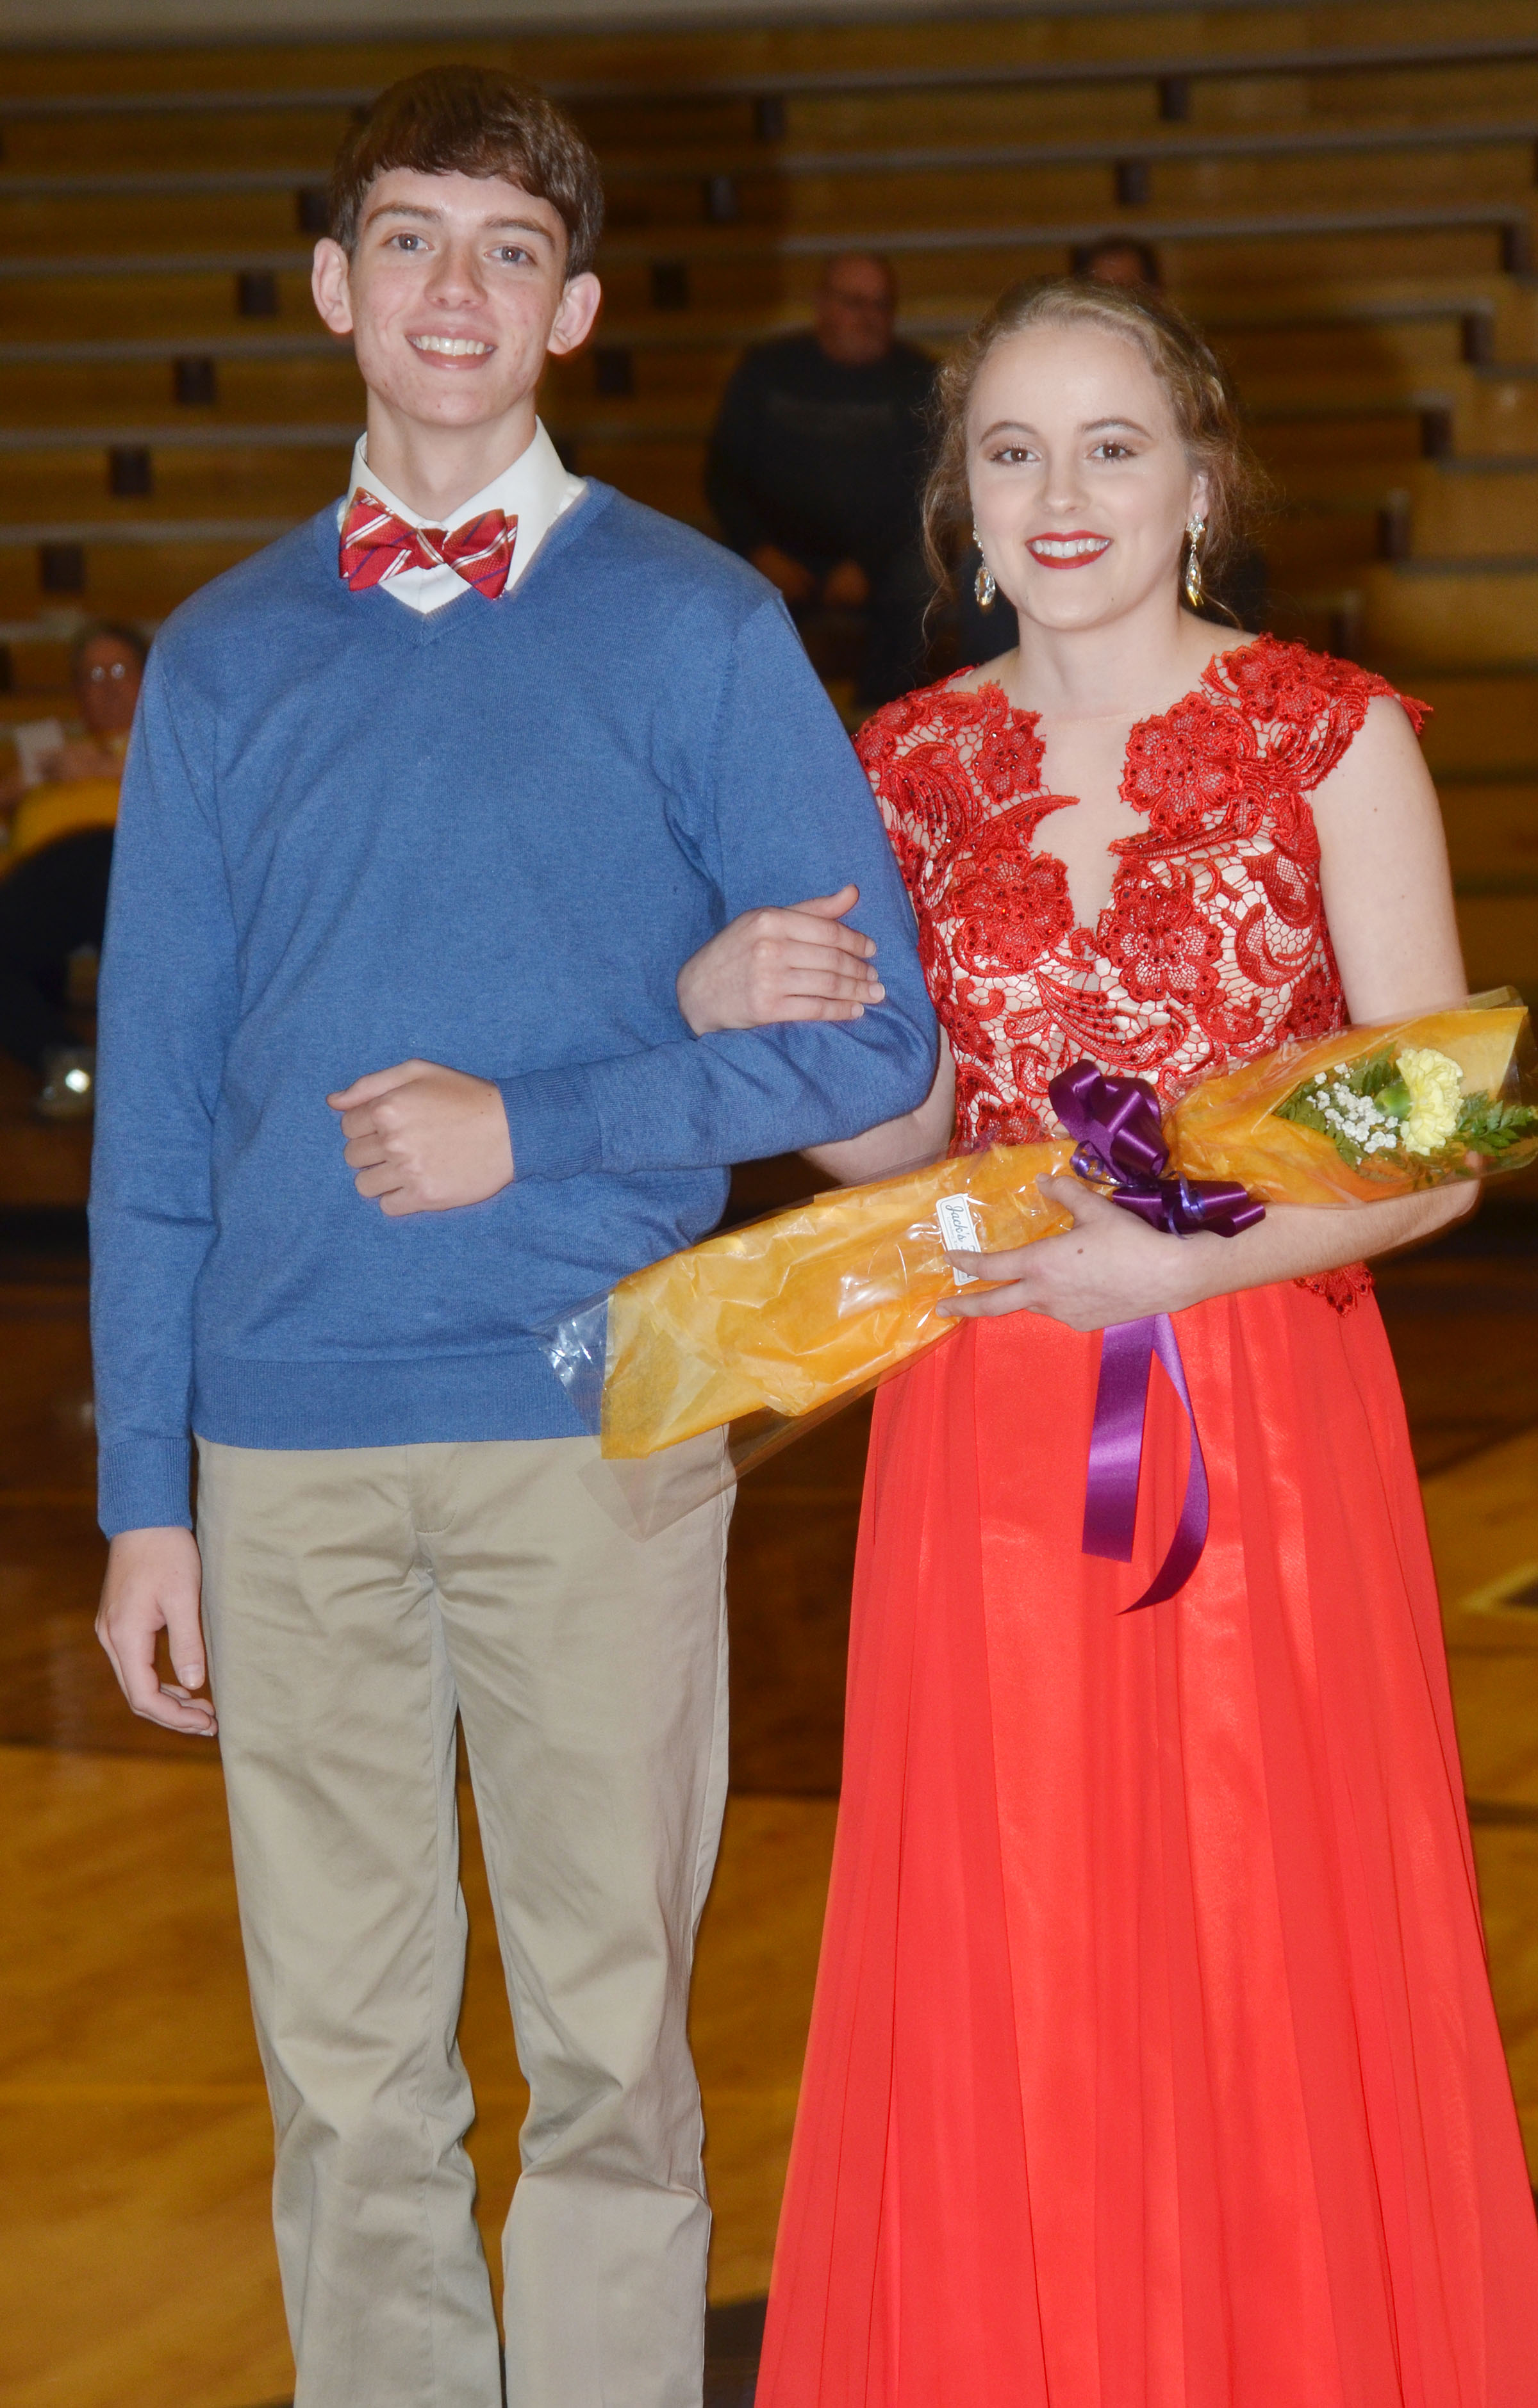 Caroline McMahan and Murphy Lamb represented the CHS senior class.